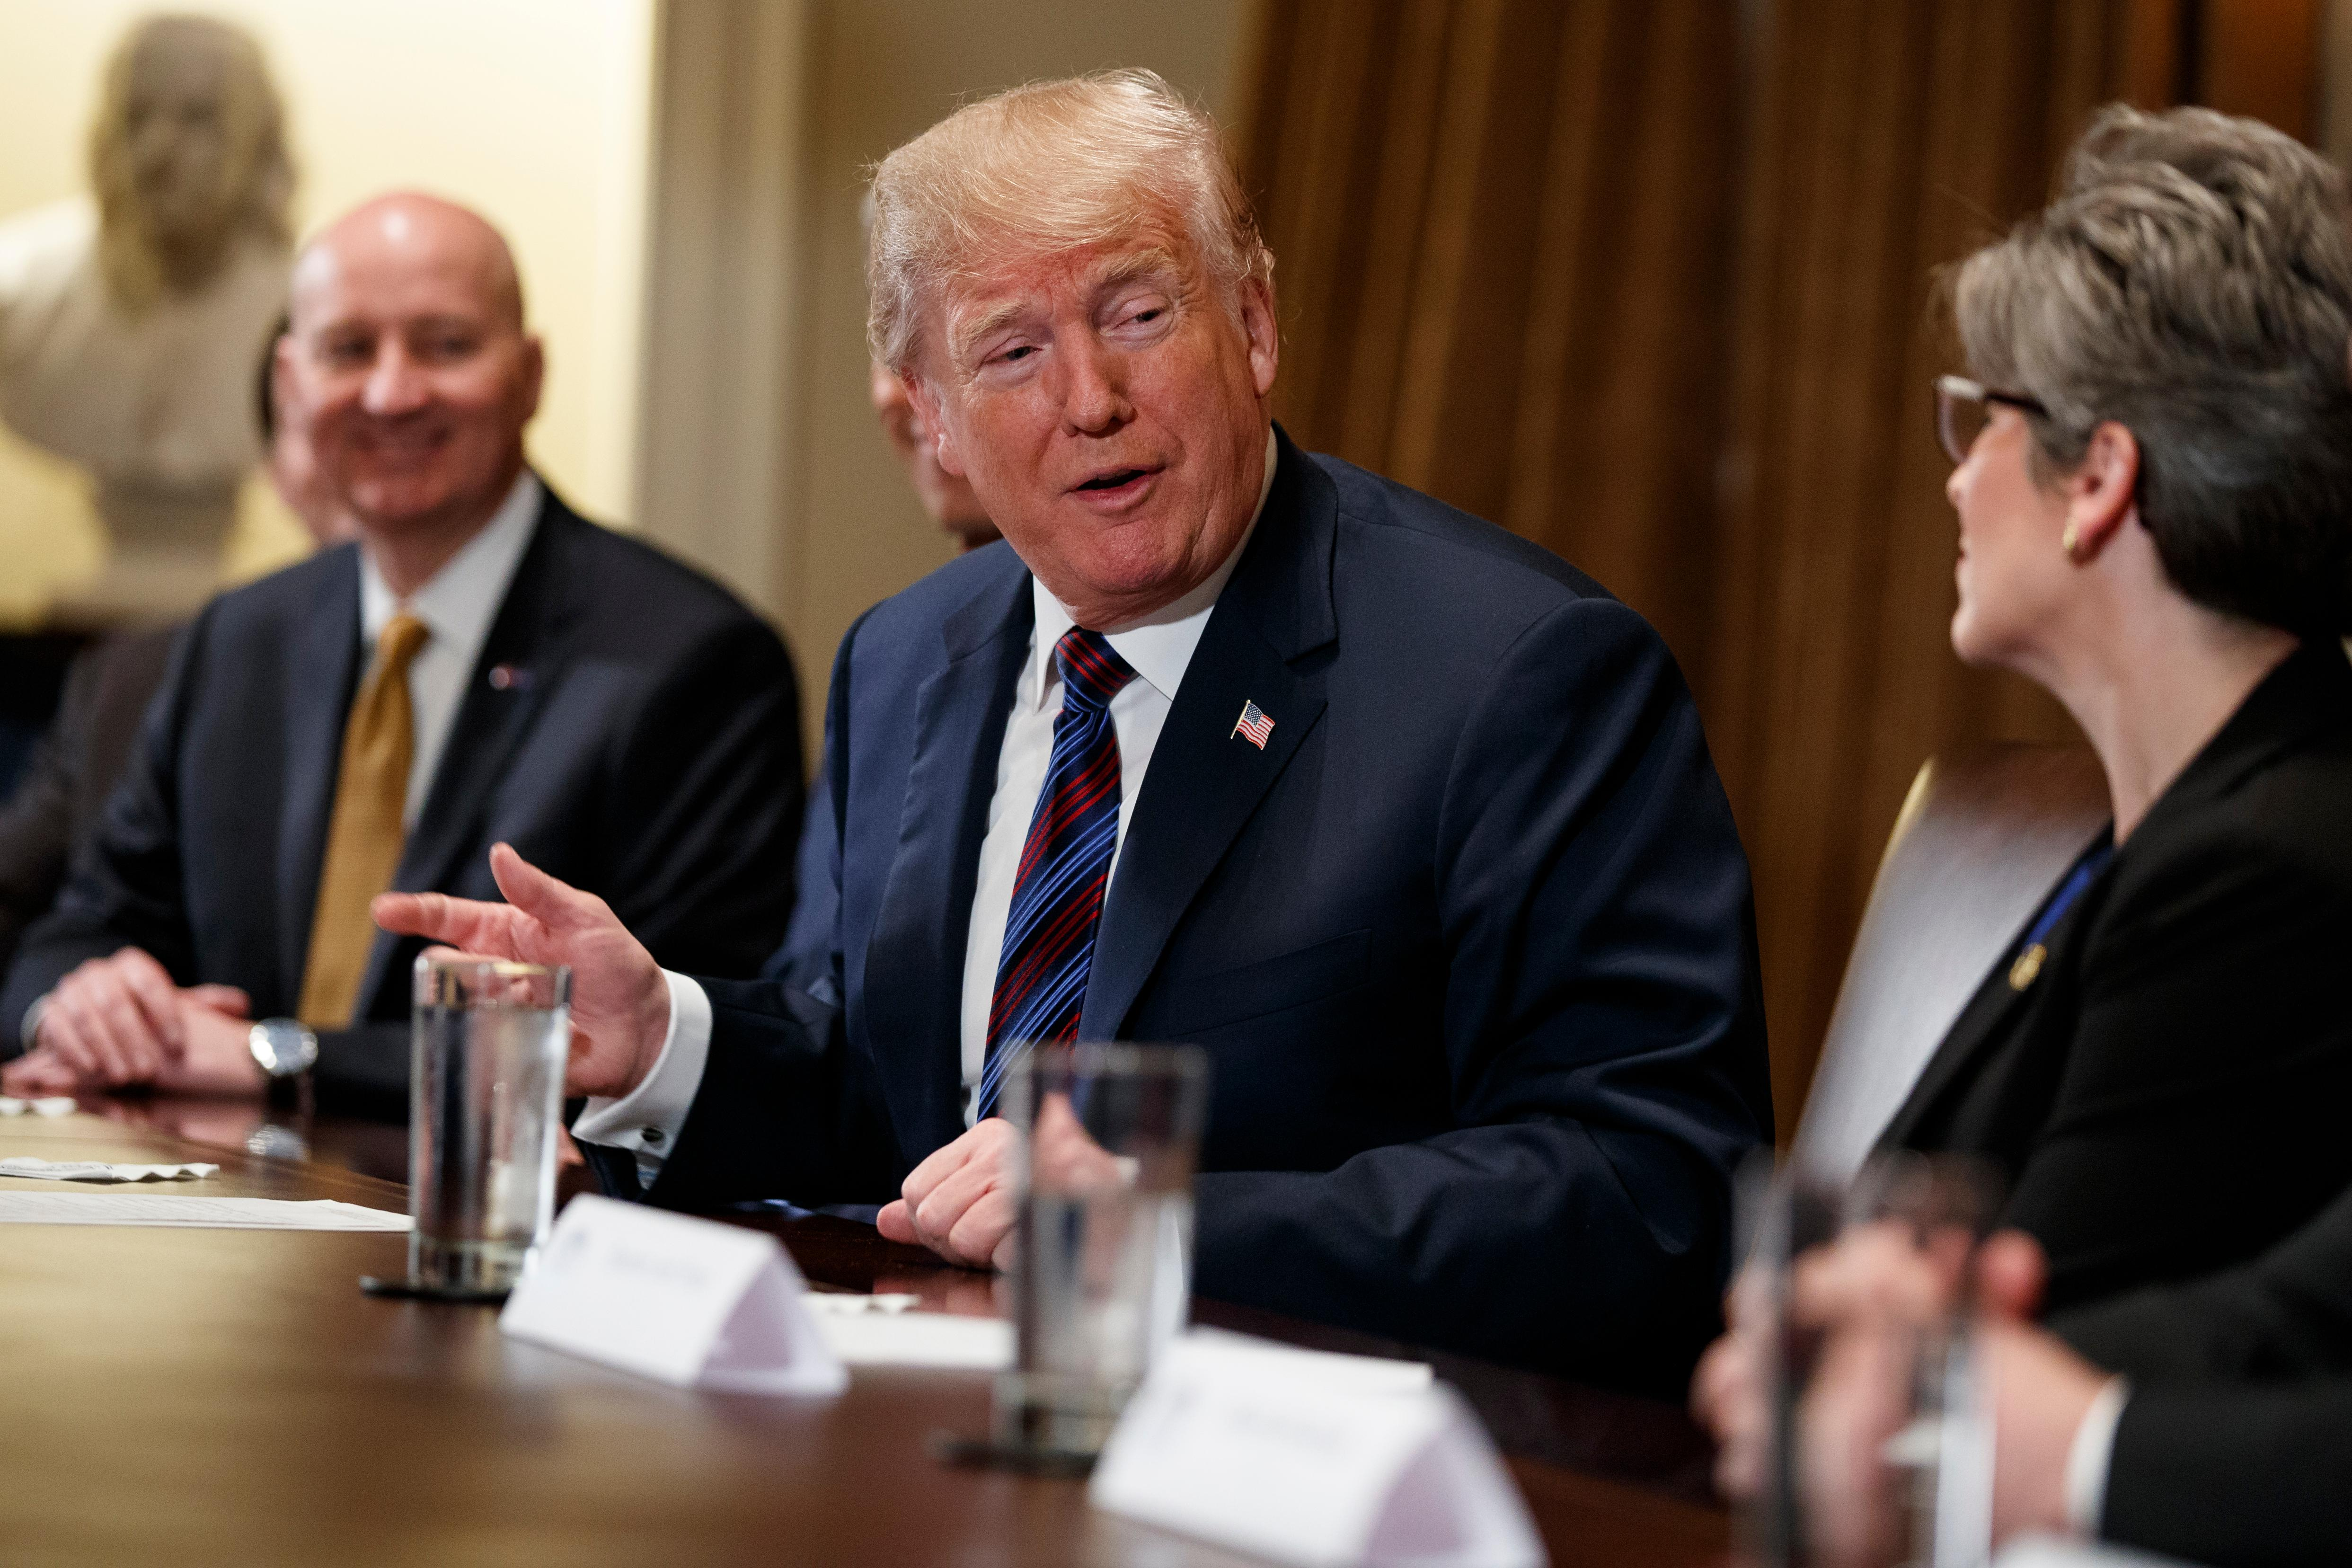 Gov. Pete Ricketts, R-Neb., left, listens as President Donald Trump speaks to Sen. Joni Ernst, R-Iowa, during a meeting with governors and lawmakers in the Cabinet Room of the White House, Thursday, April 12, 2018, in Washington. (AP Photo/Evan Vucci)